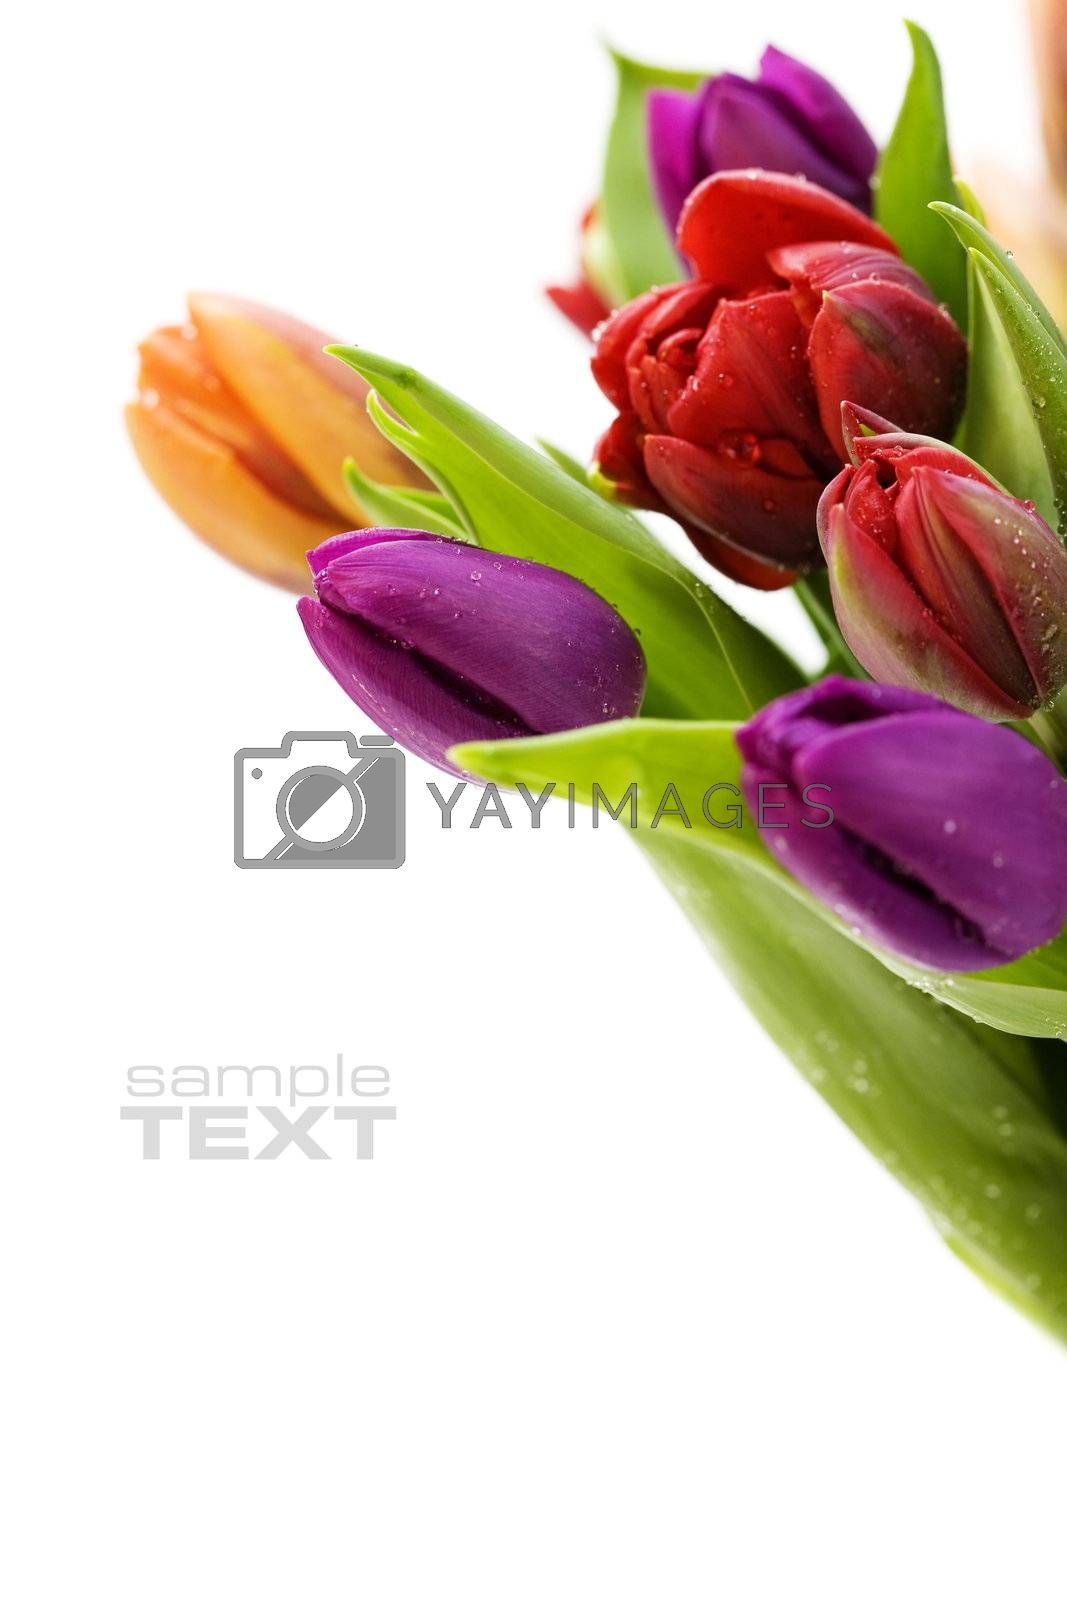 fresh tulips with water droplets on white background. With sample text